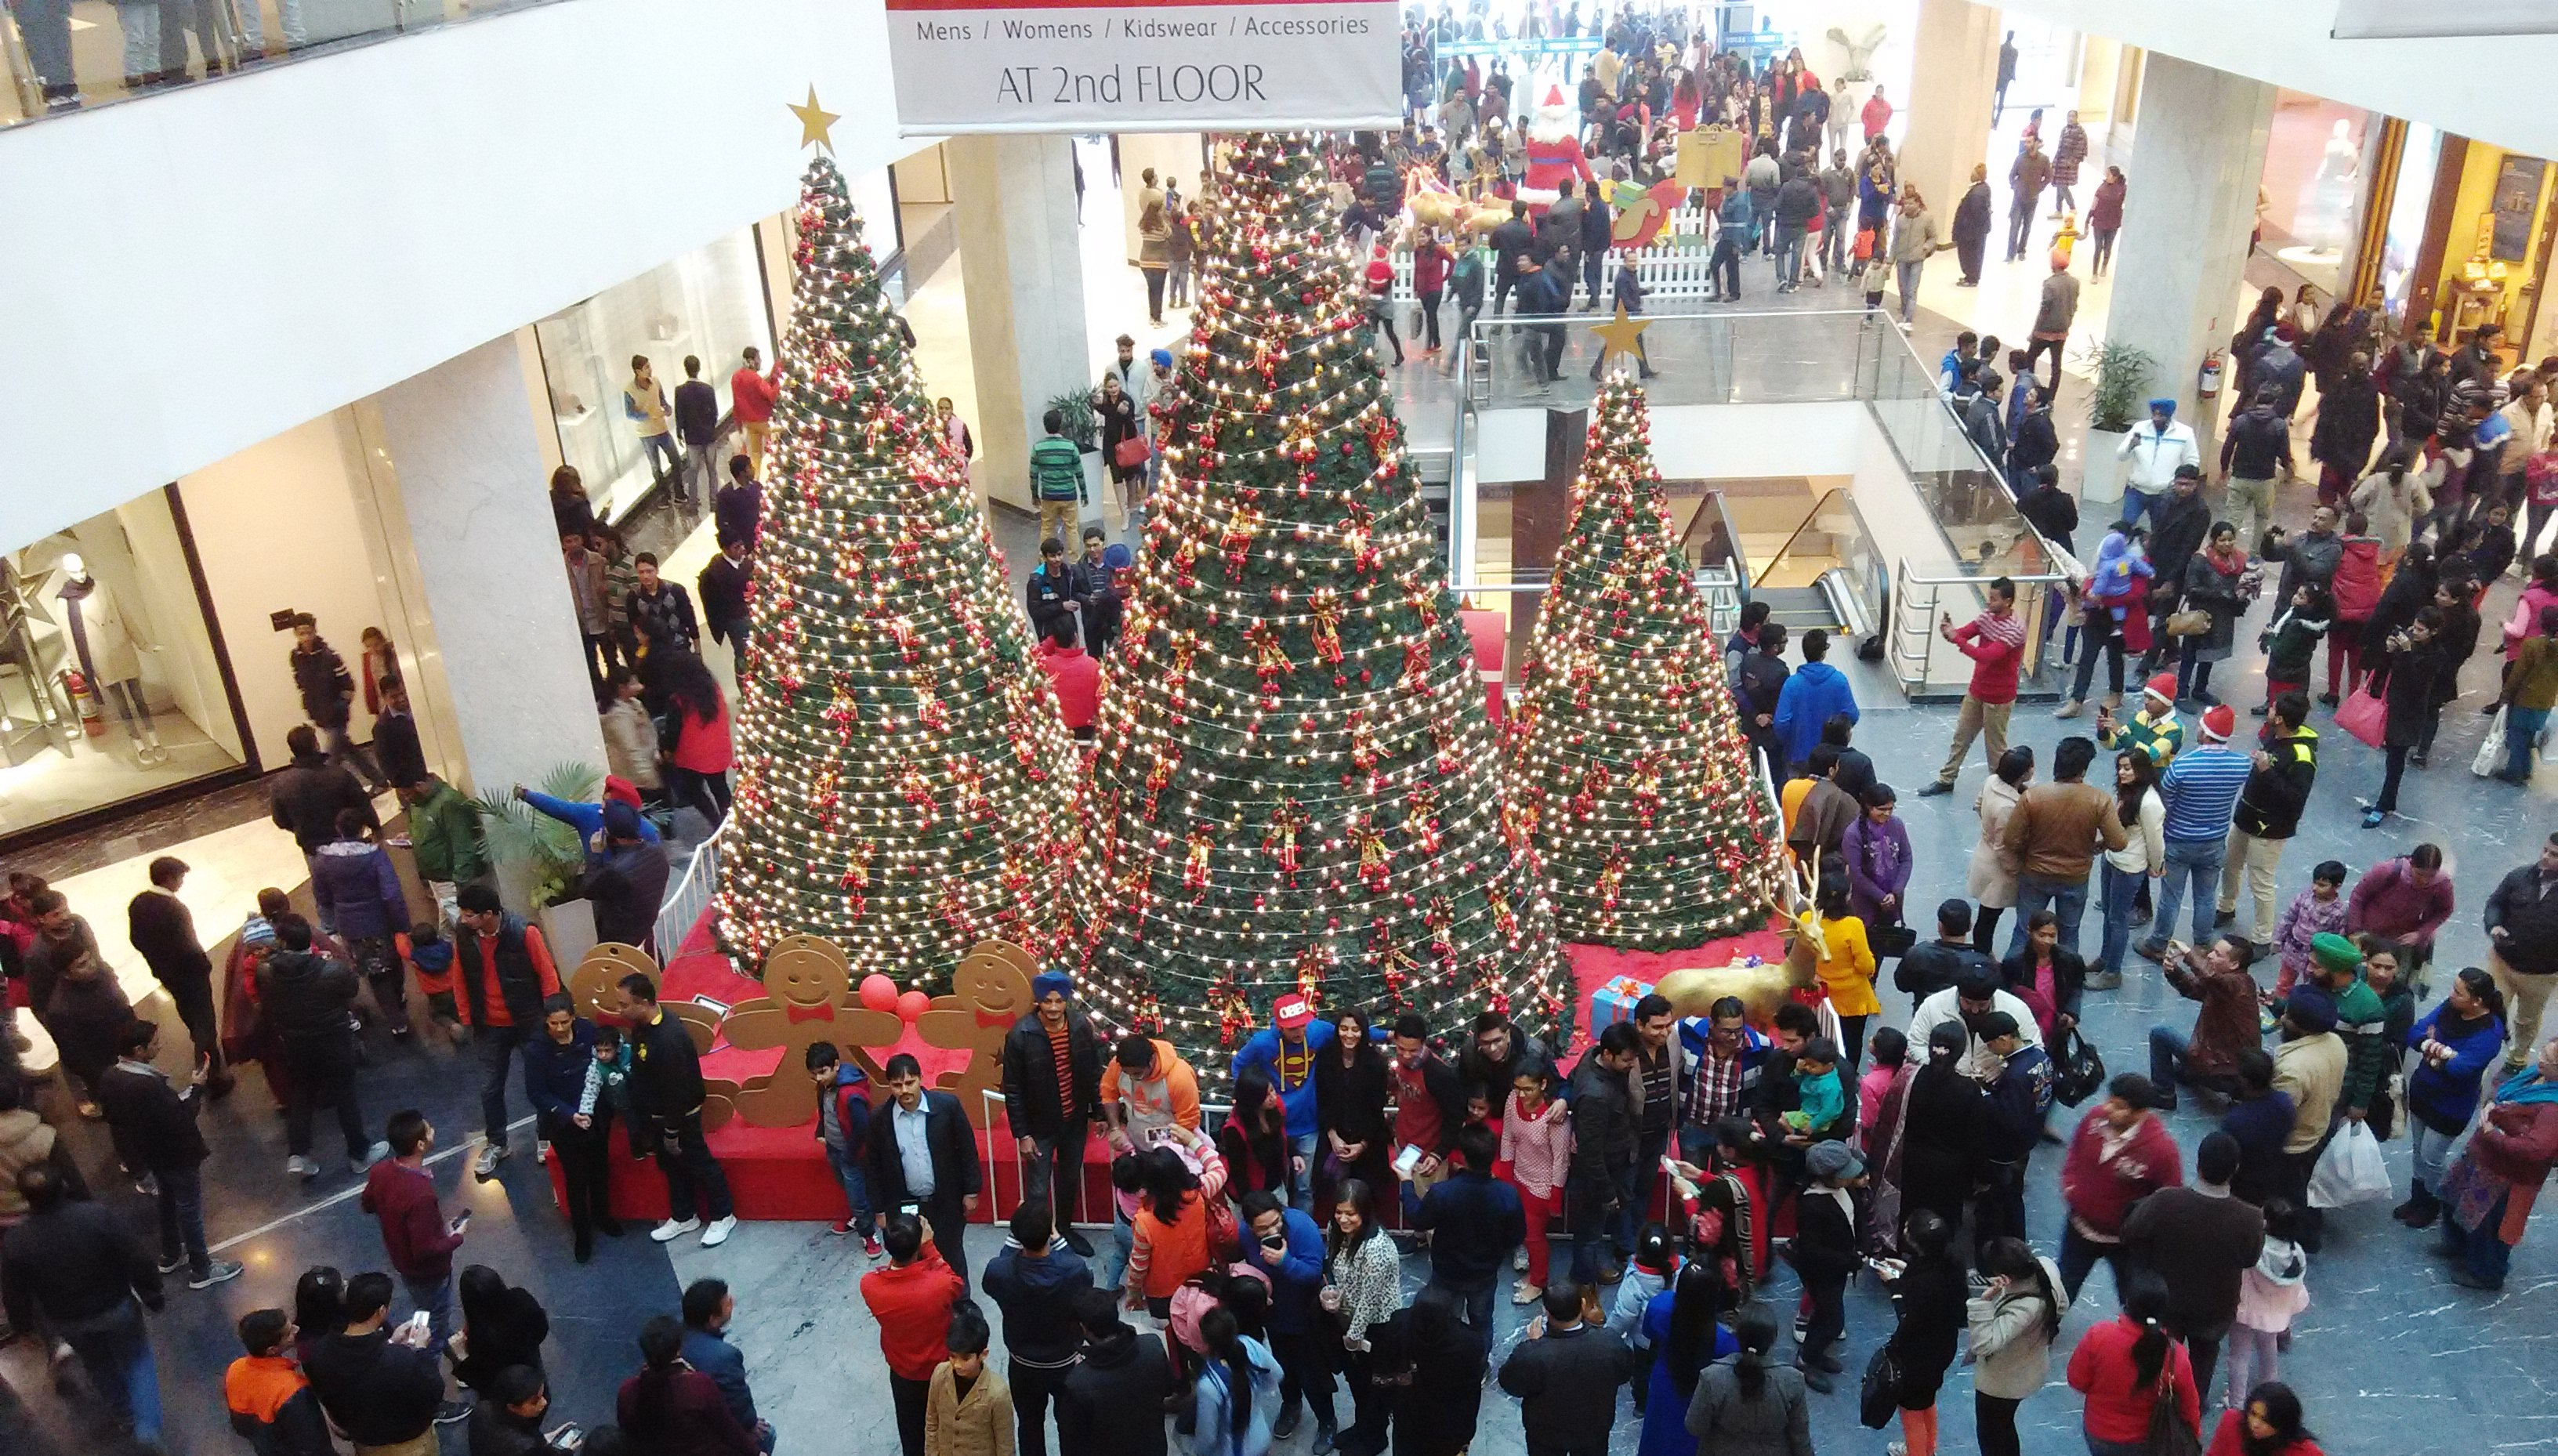 elante mall gets jam packed on christmas eve in chandigarh - What Time Does The Mall Close On Christmas Eve